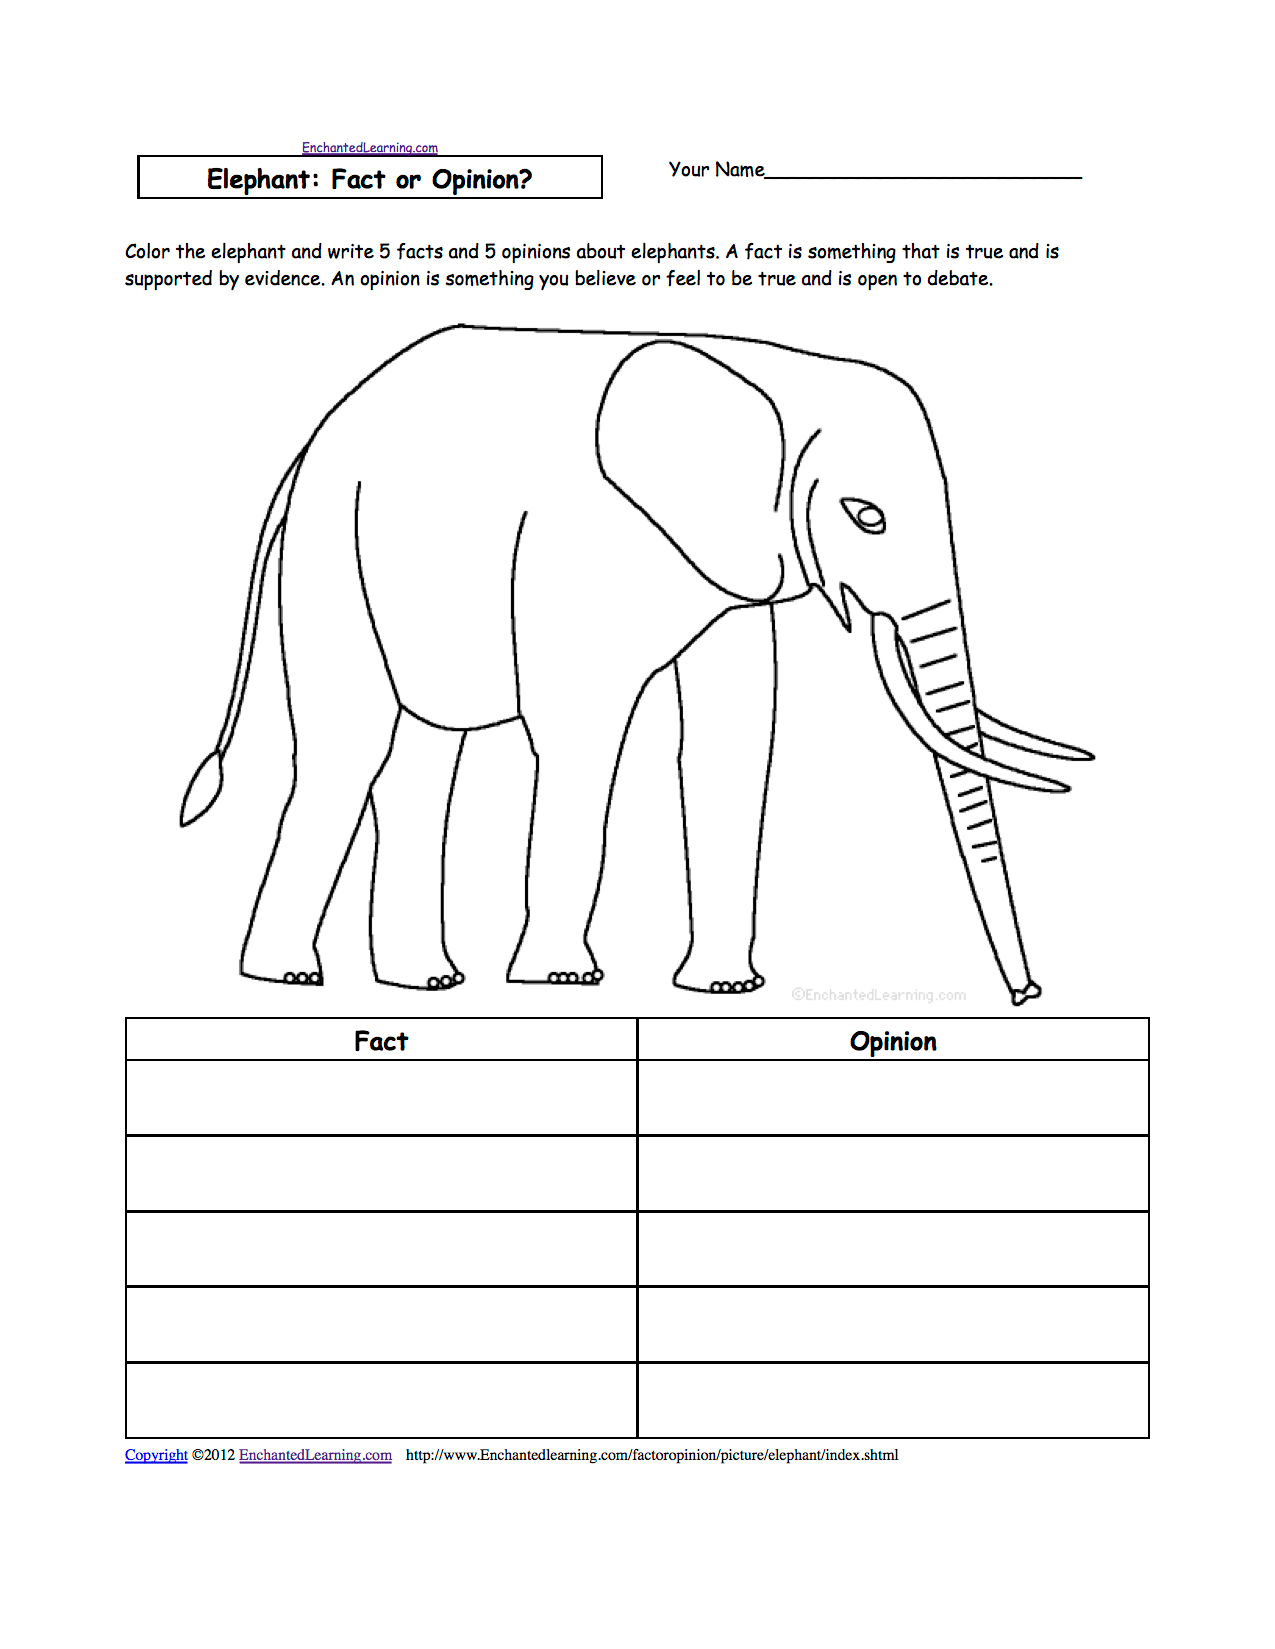 Elephants At Enchantedlearning